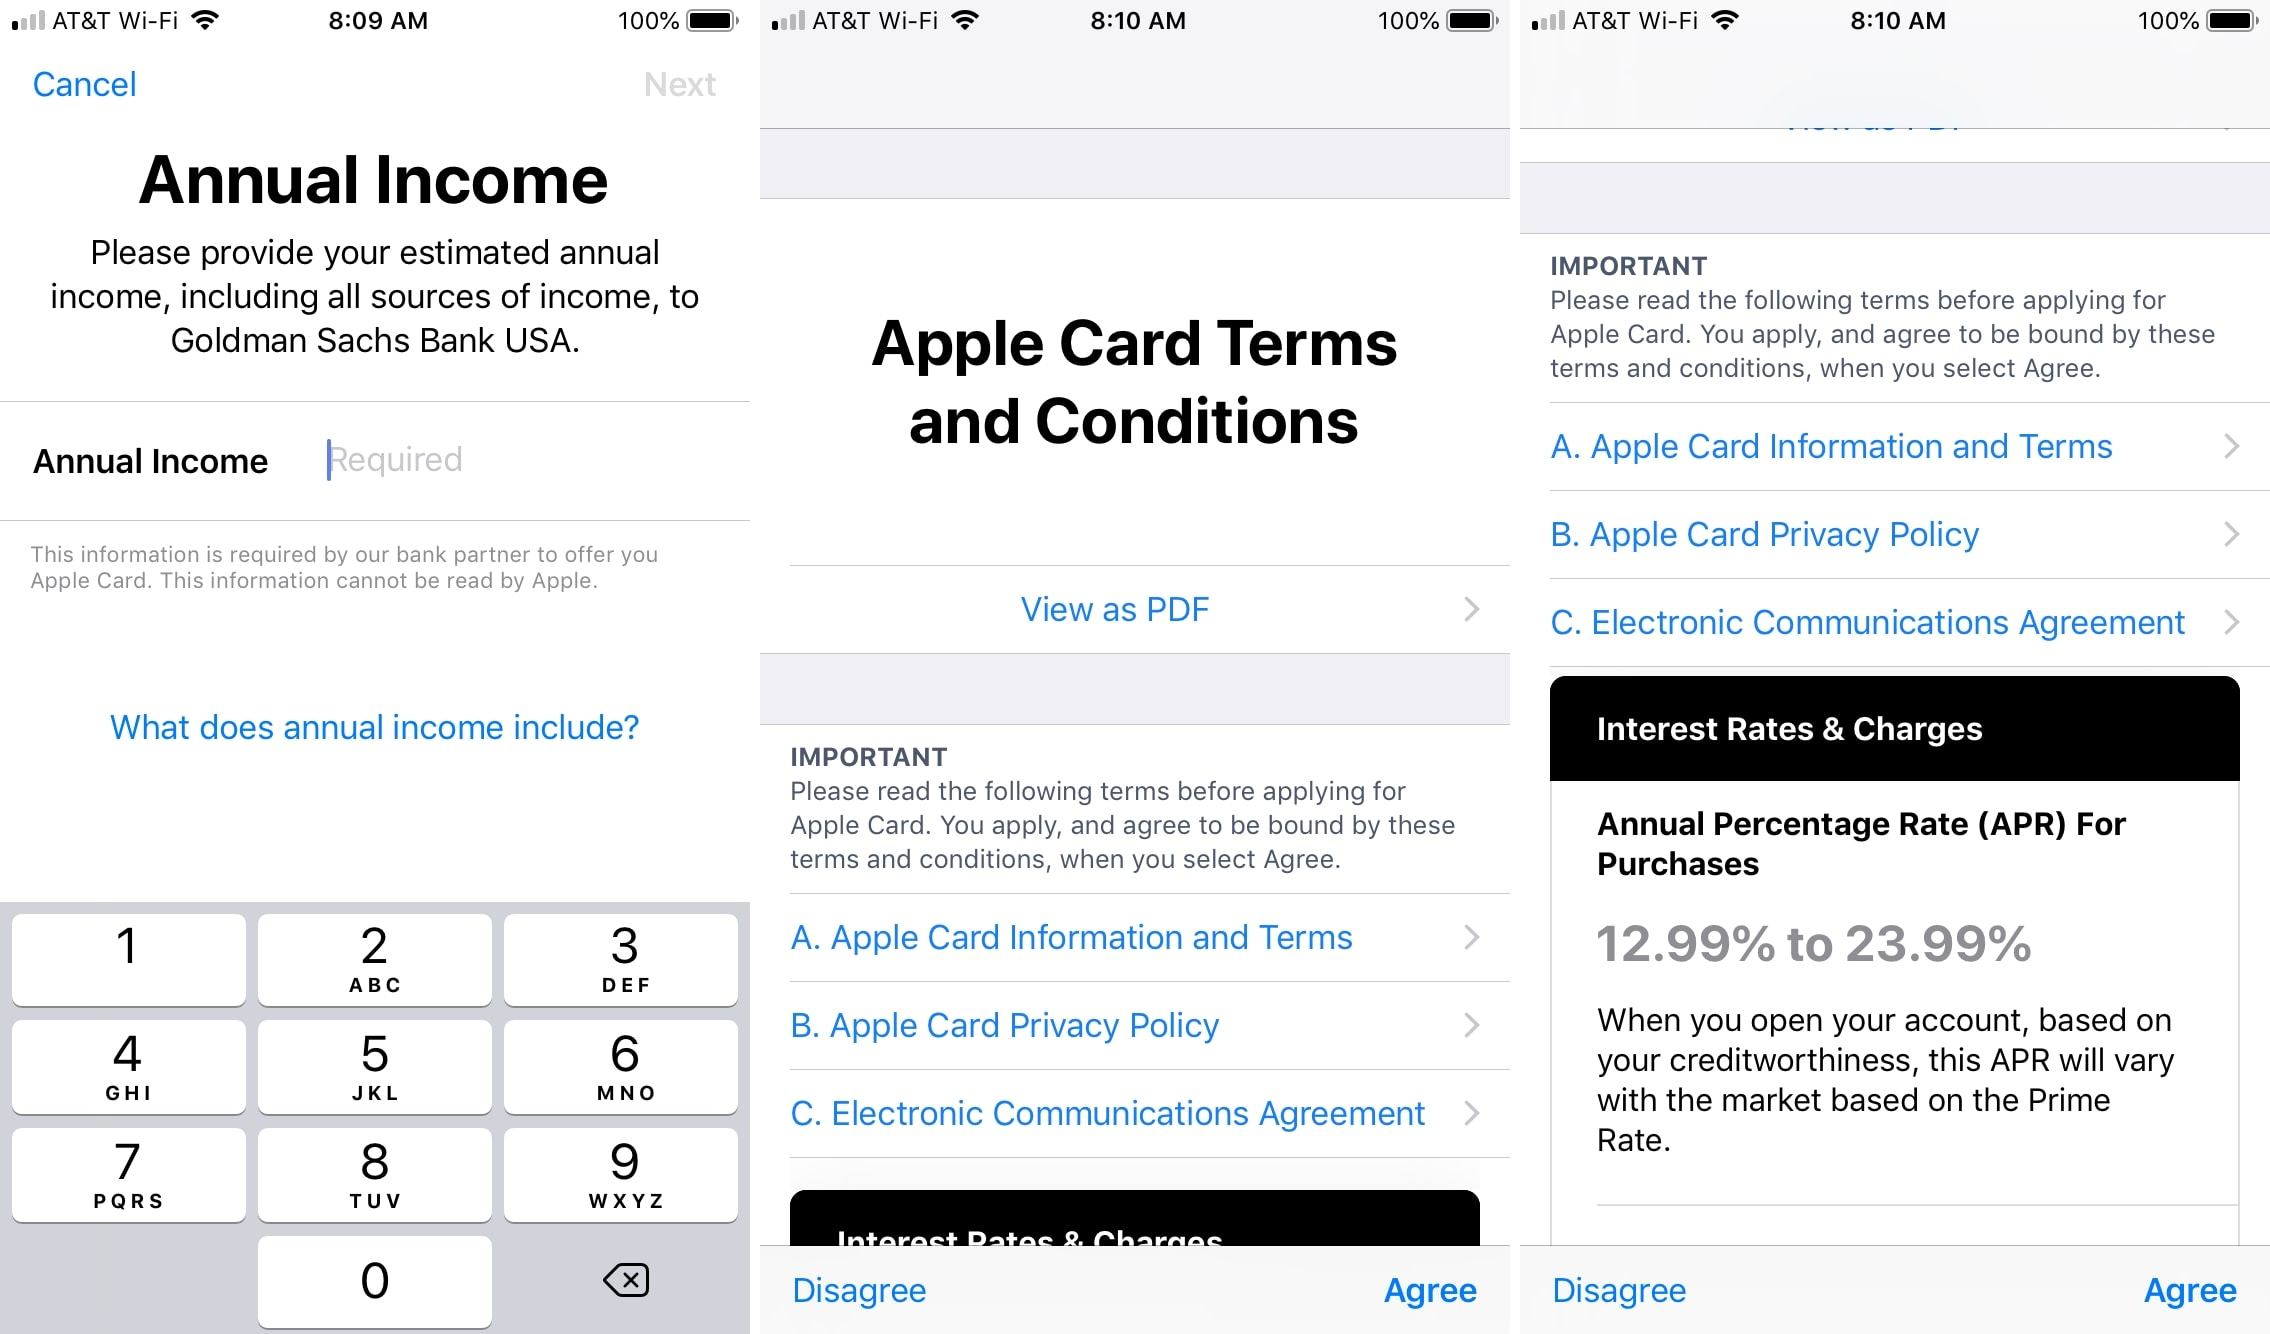 Applicable to Apple Card income and conditions